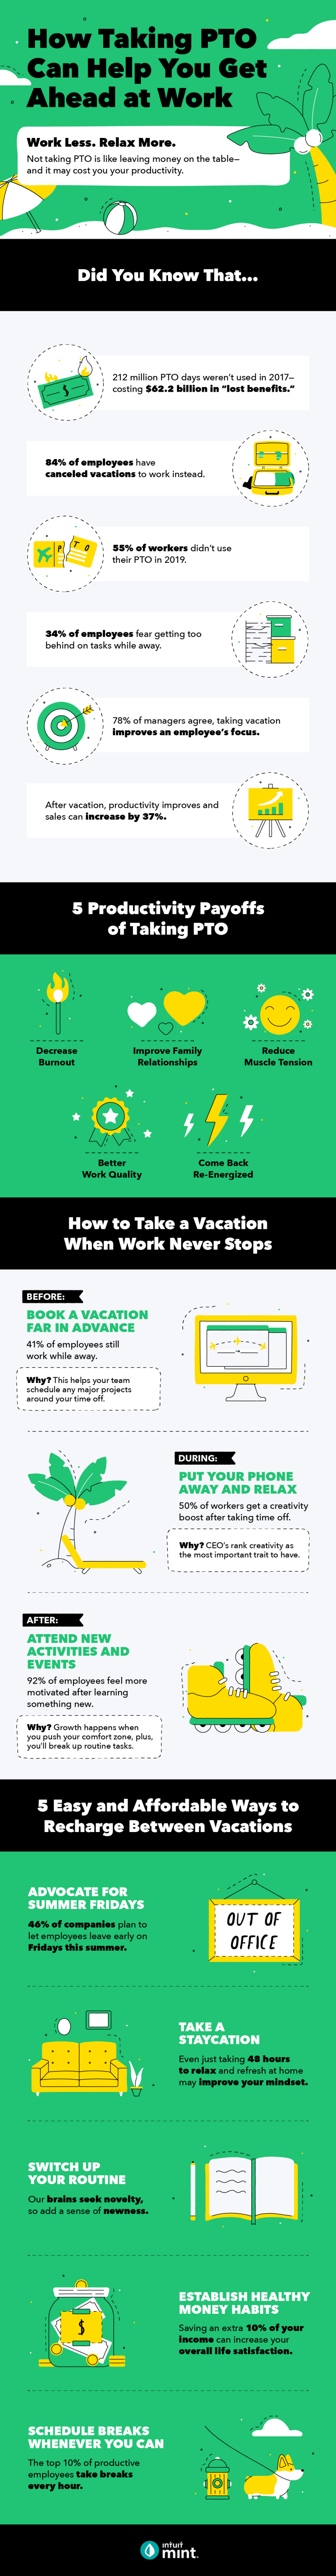 How to take advantage of PTO at Work # infographic